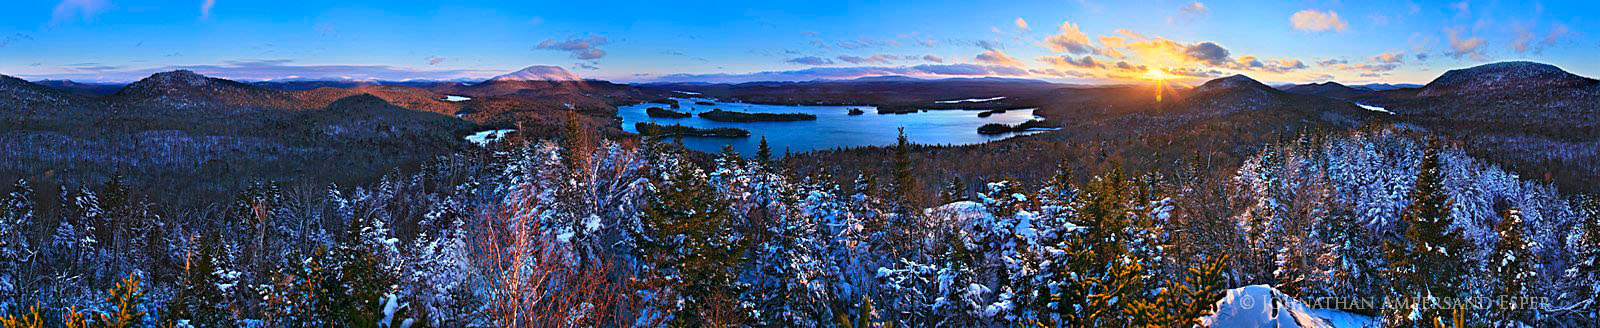 Blue Mountain Lake,winter,360 degree,panorama,Adirondack Park,Castle Rock,treetop,sunset,November,early, photo